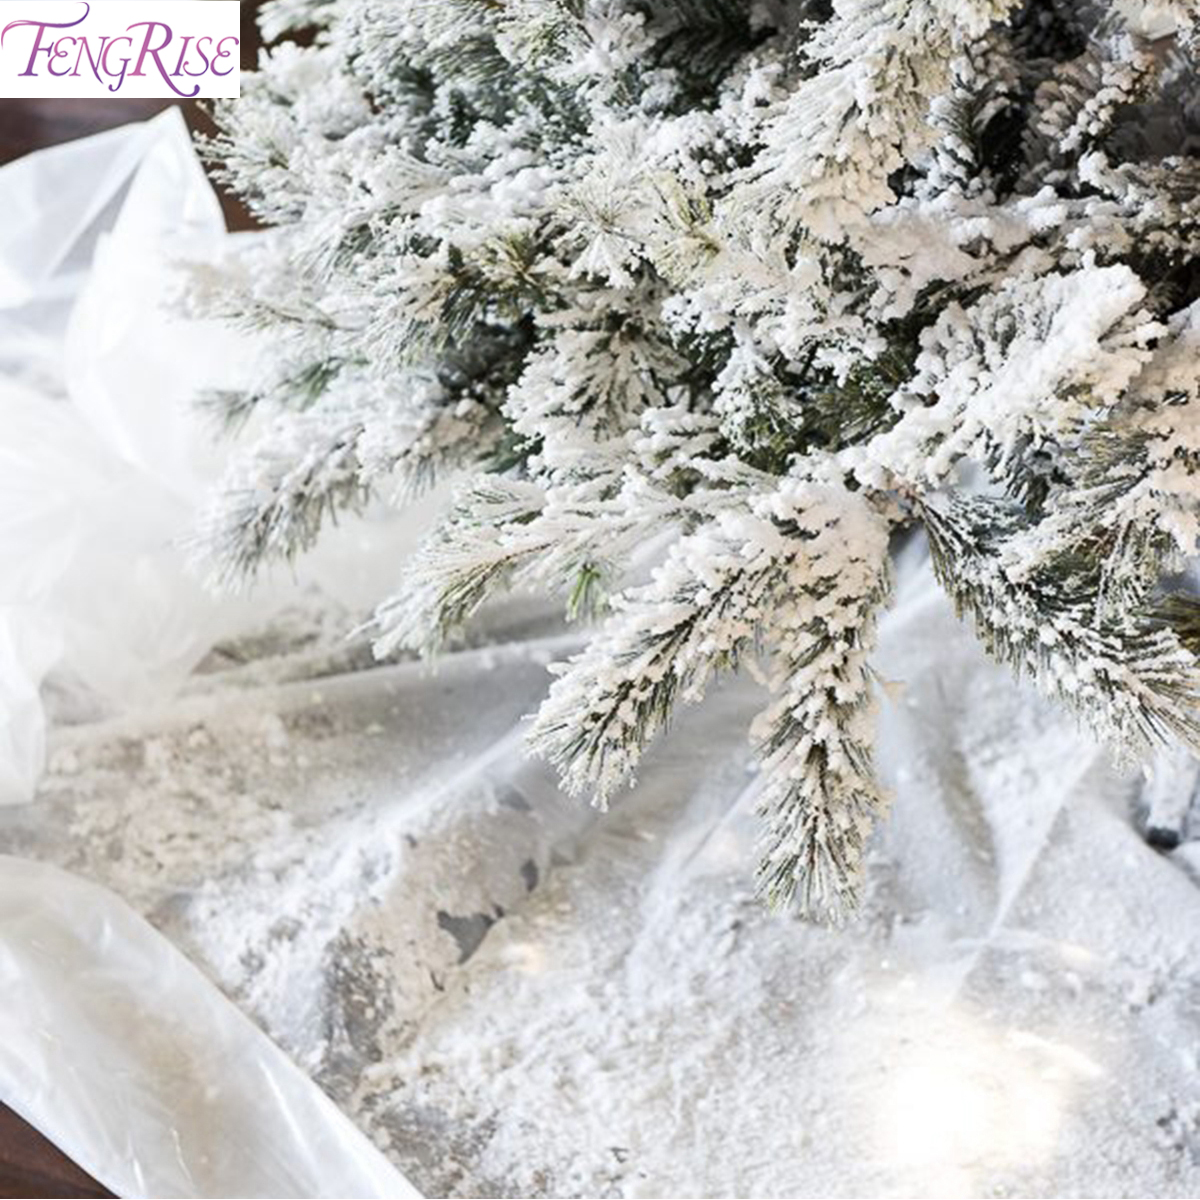 FENGRISE 1 Pack Instant Artificial Snow Fake Snow For Slime Magic Artificial Snowflakes Festival Party Decor Christmas Party